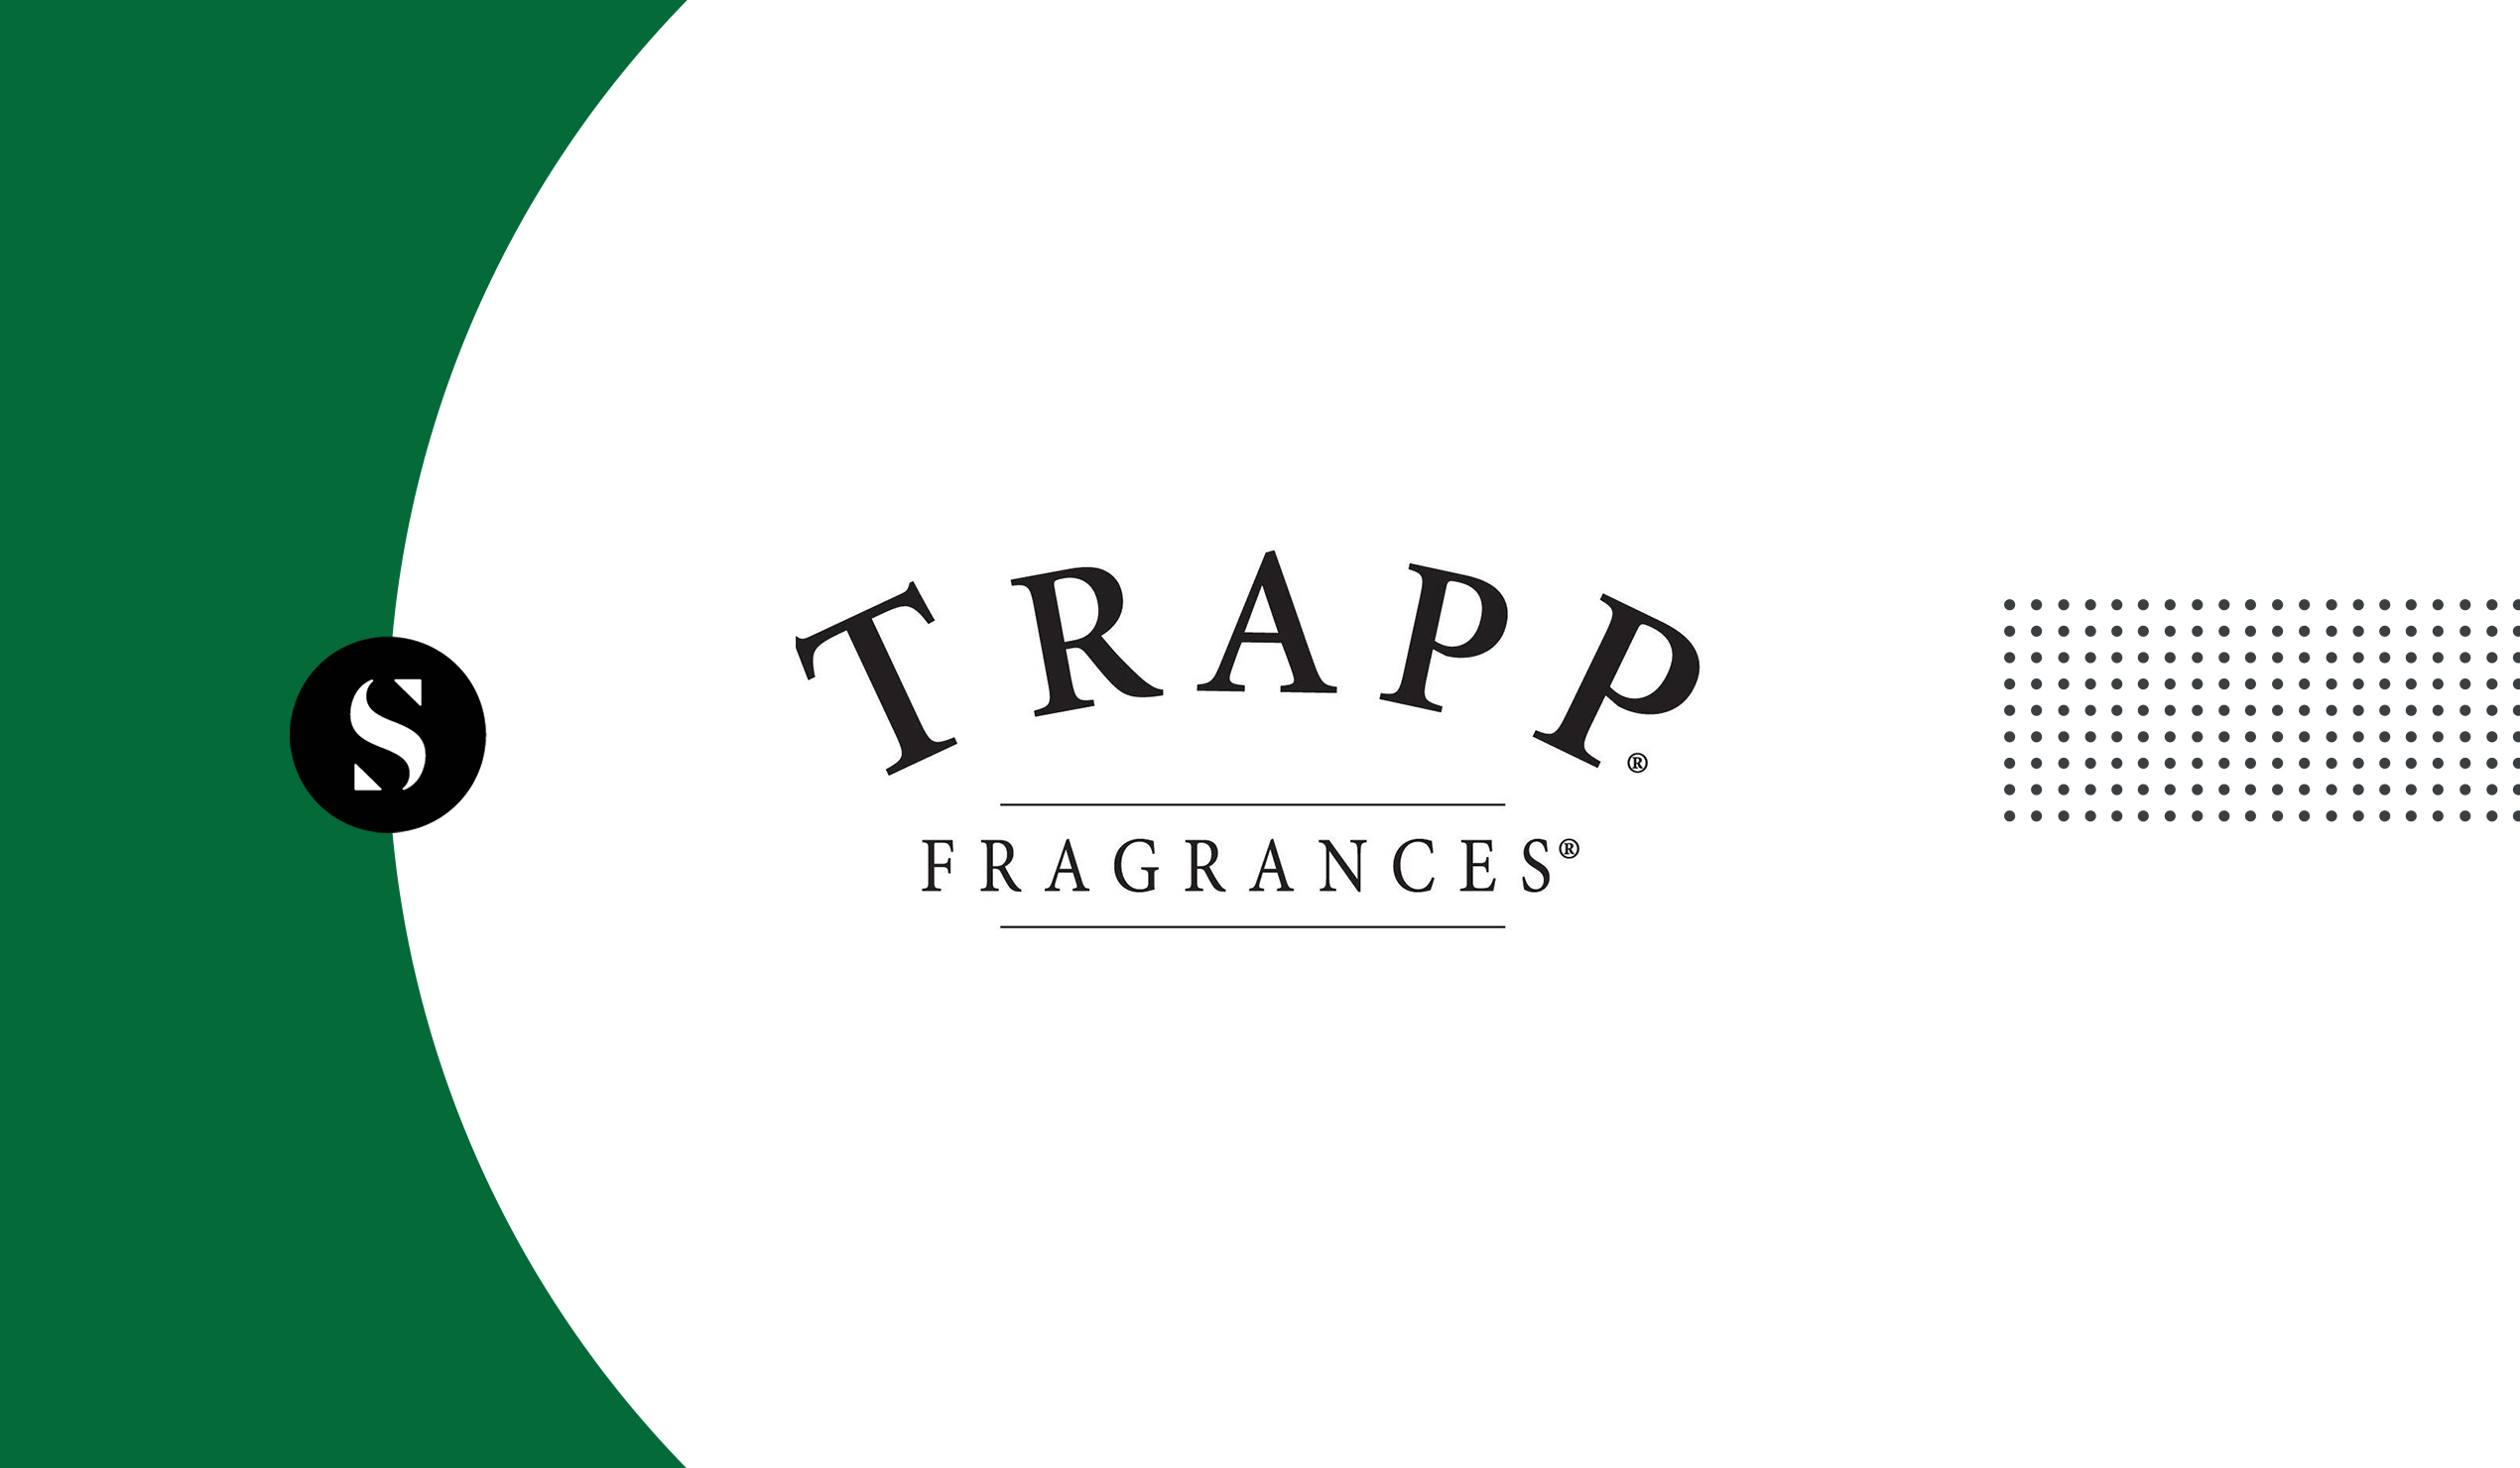 Trapp Fragrances Selects Signal Theory as Marketing Partner